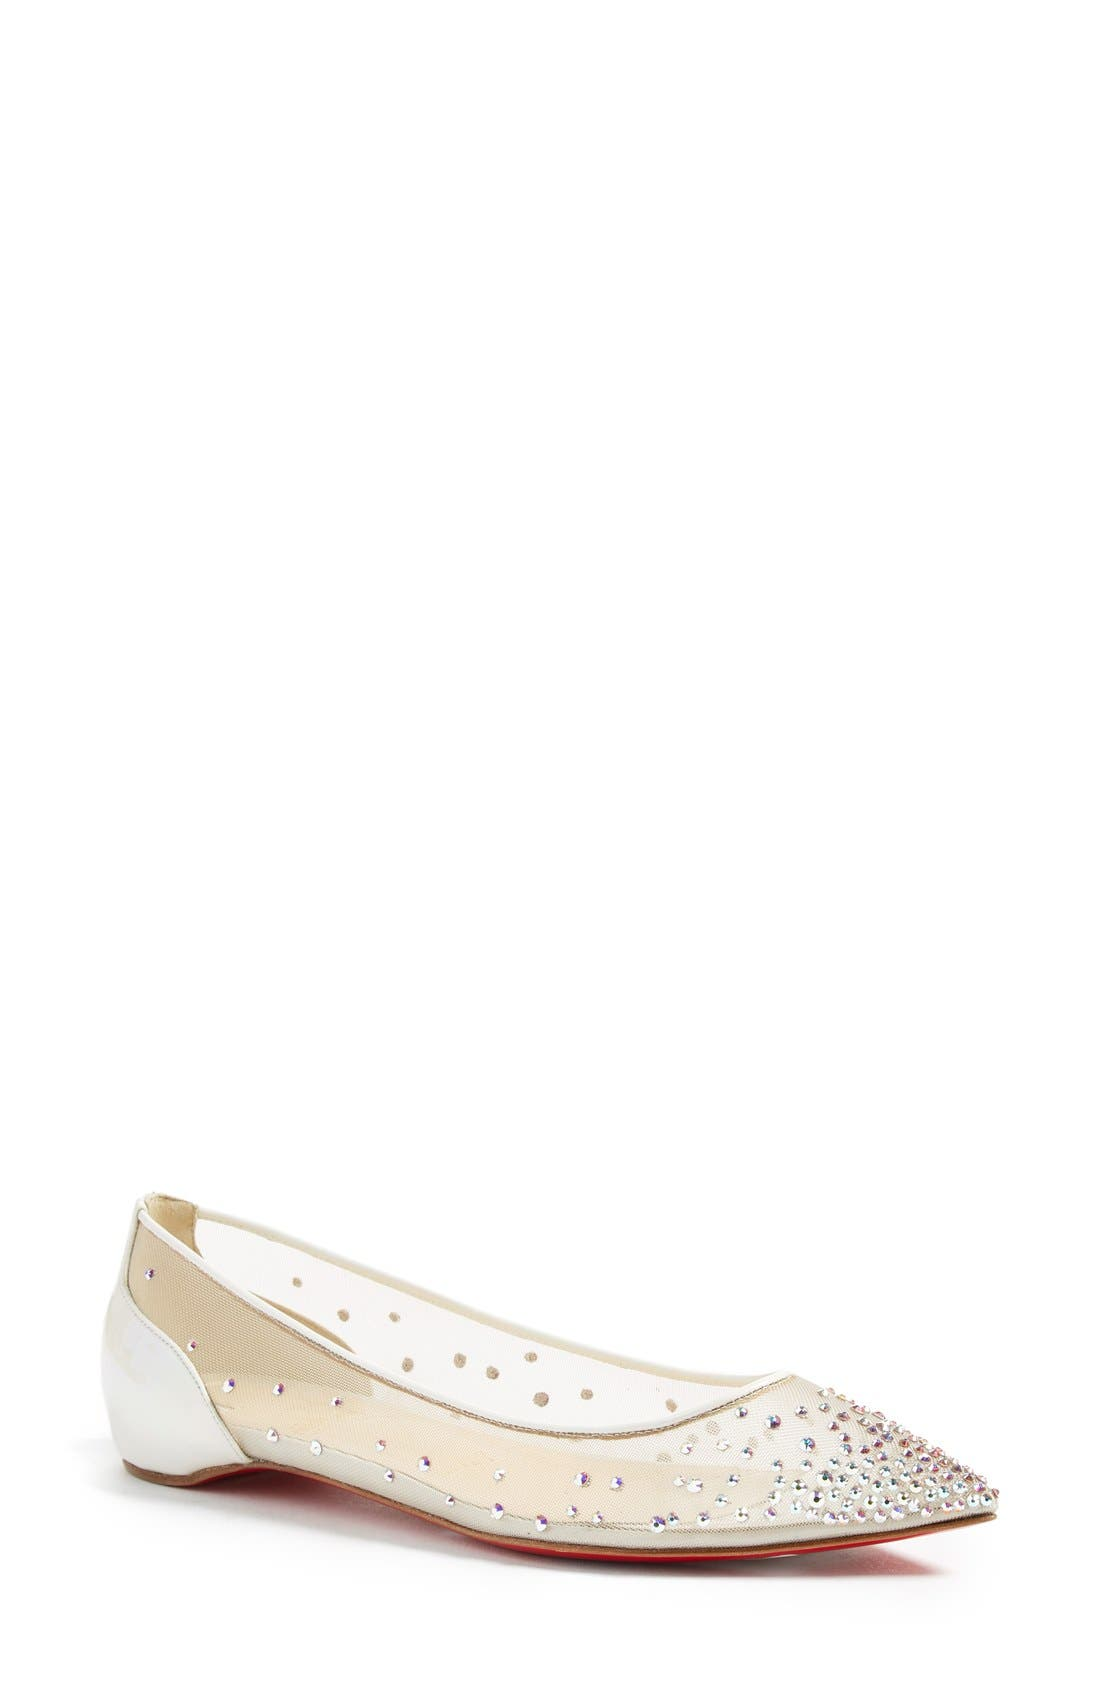 Follies Strass Pointy Toe Flat,                             Main thumbnail 1, color,                             White